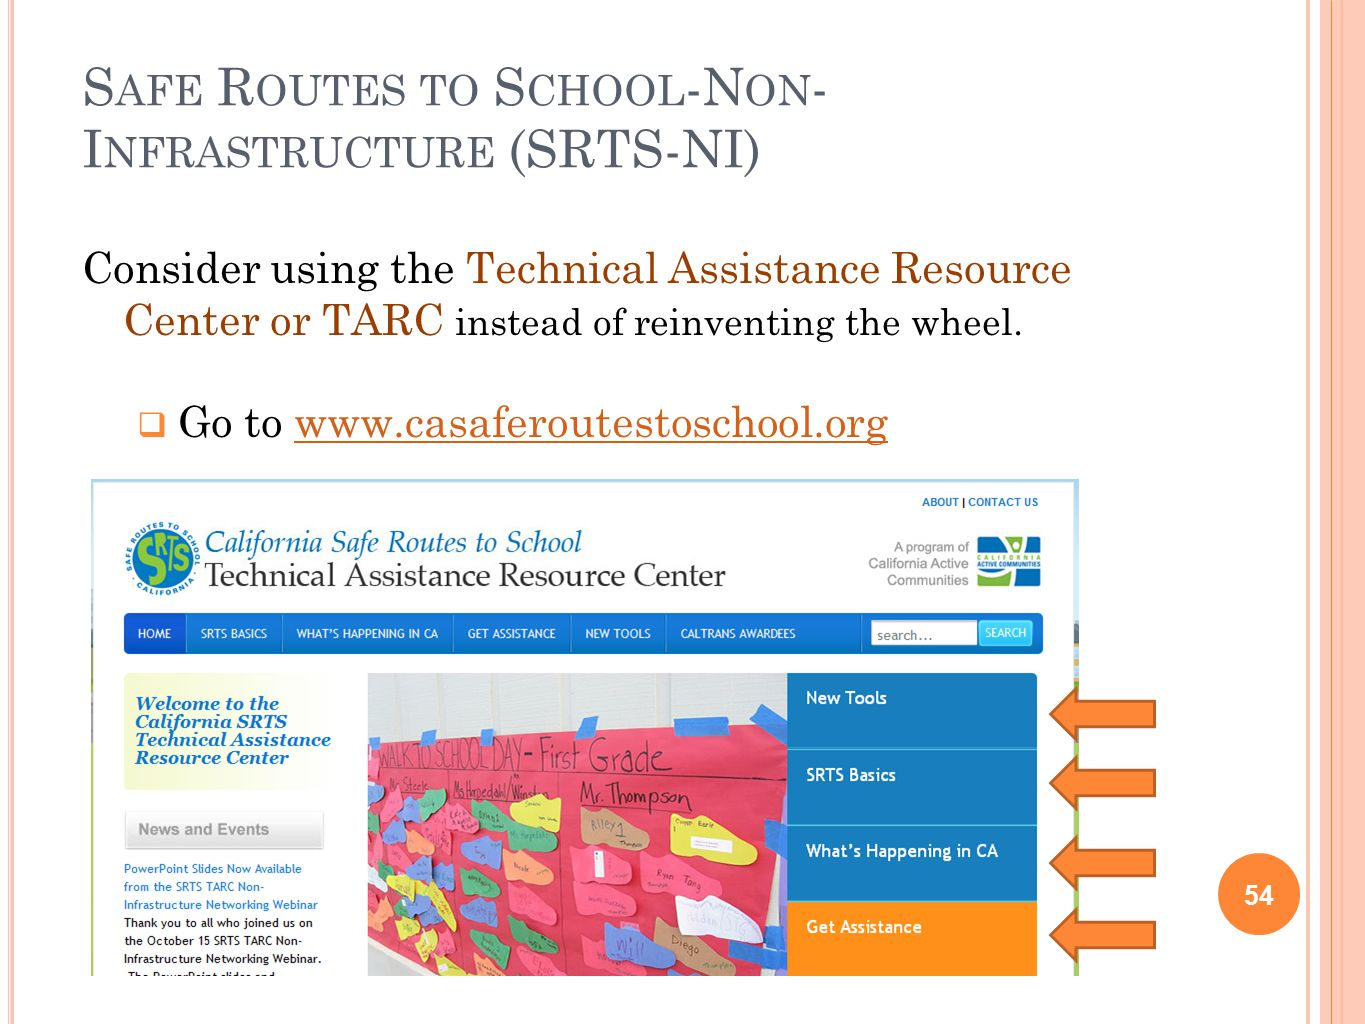 S AFE R OUTES TO S CHOOL -N ON - I NFRASTRUCTURE (SRTS-NI) 54 Consider using the Technical Assistance Resource Center or TARC instead of reinventing the wheel.